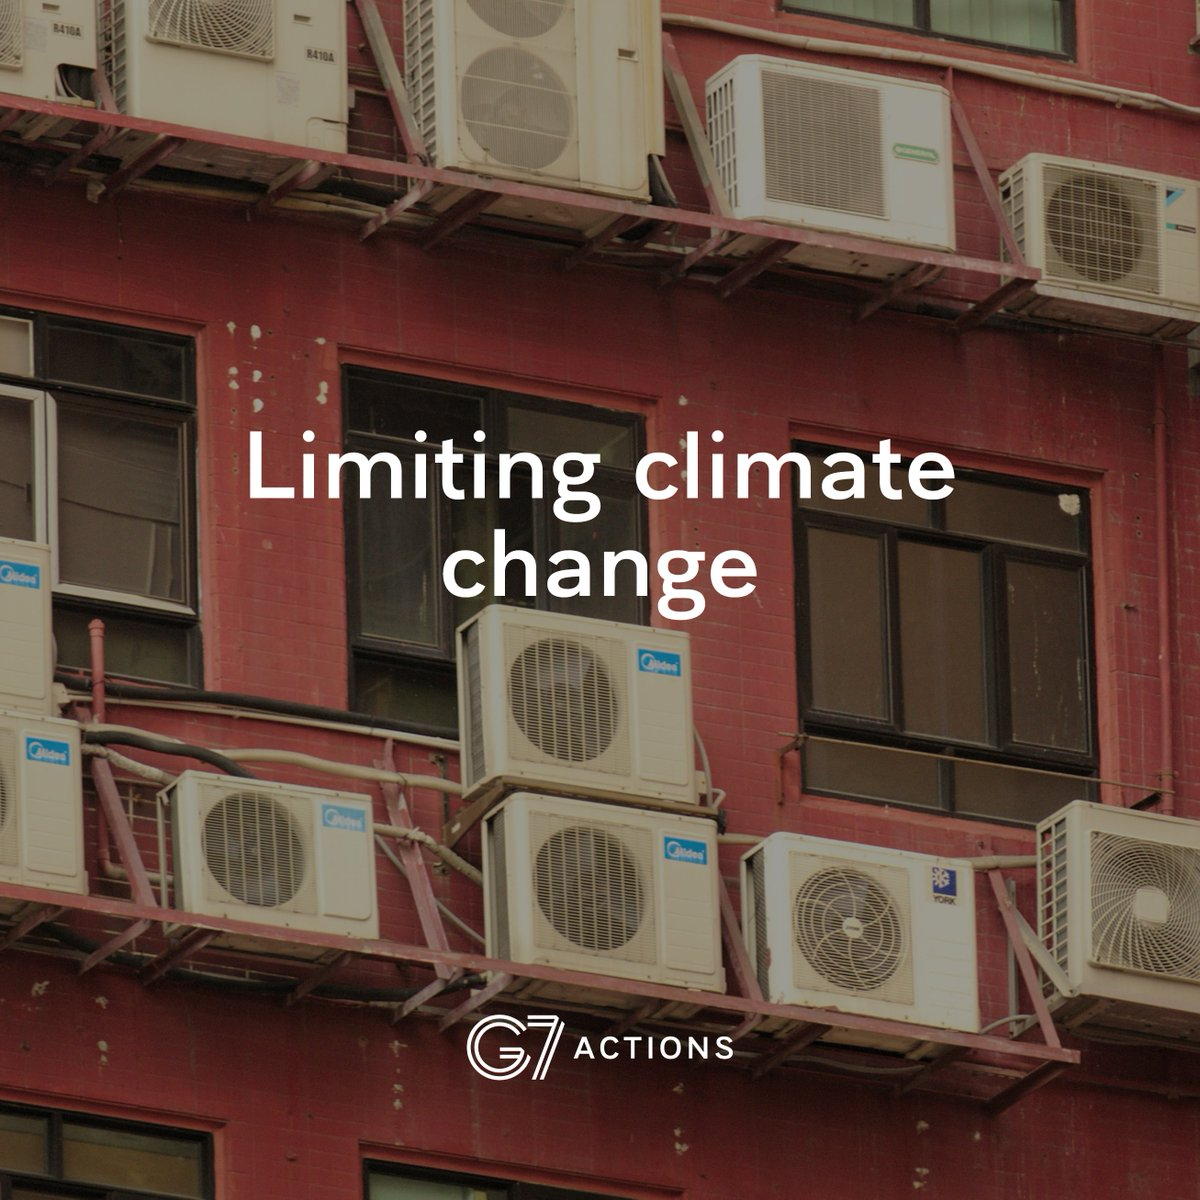 Did you know that the air-conditioners we use discharge greenhouse gas emissions that are 14,800 more potent than CO₂?   Action to reduce their environmental impact was endorsed at #G7Biarritz. <br>http://pic.twitter.com/rSxwYS11BF